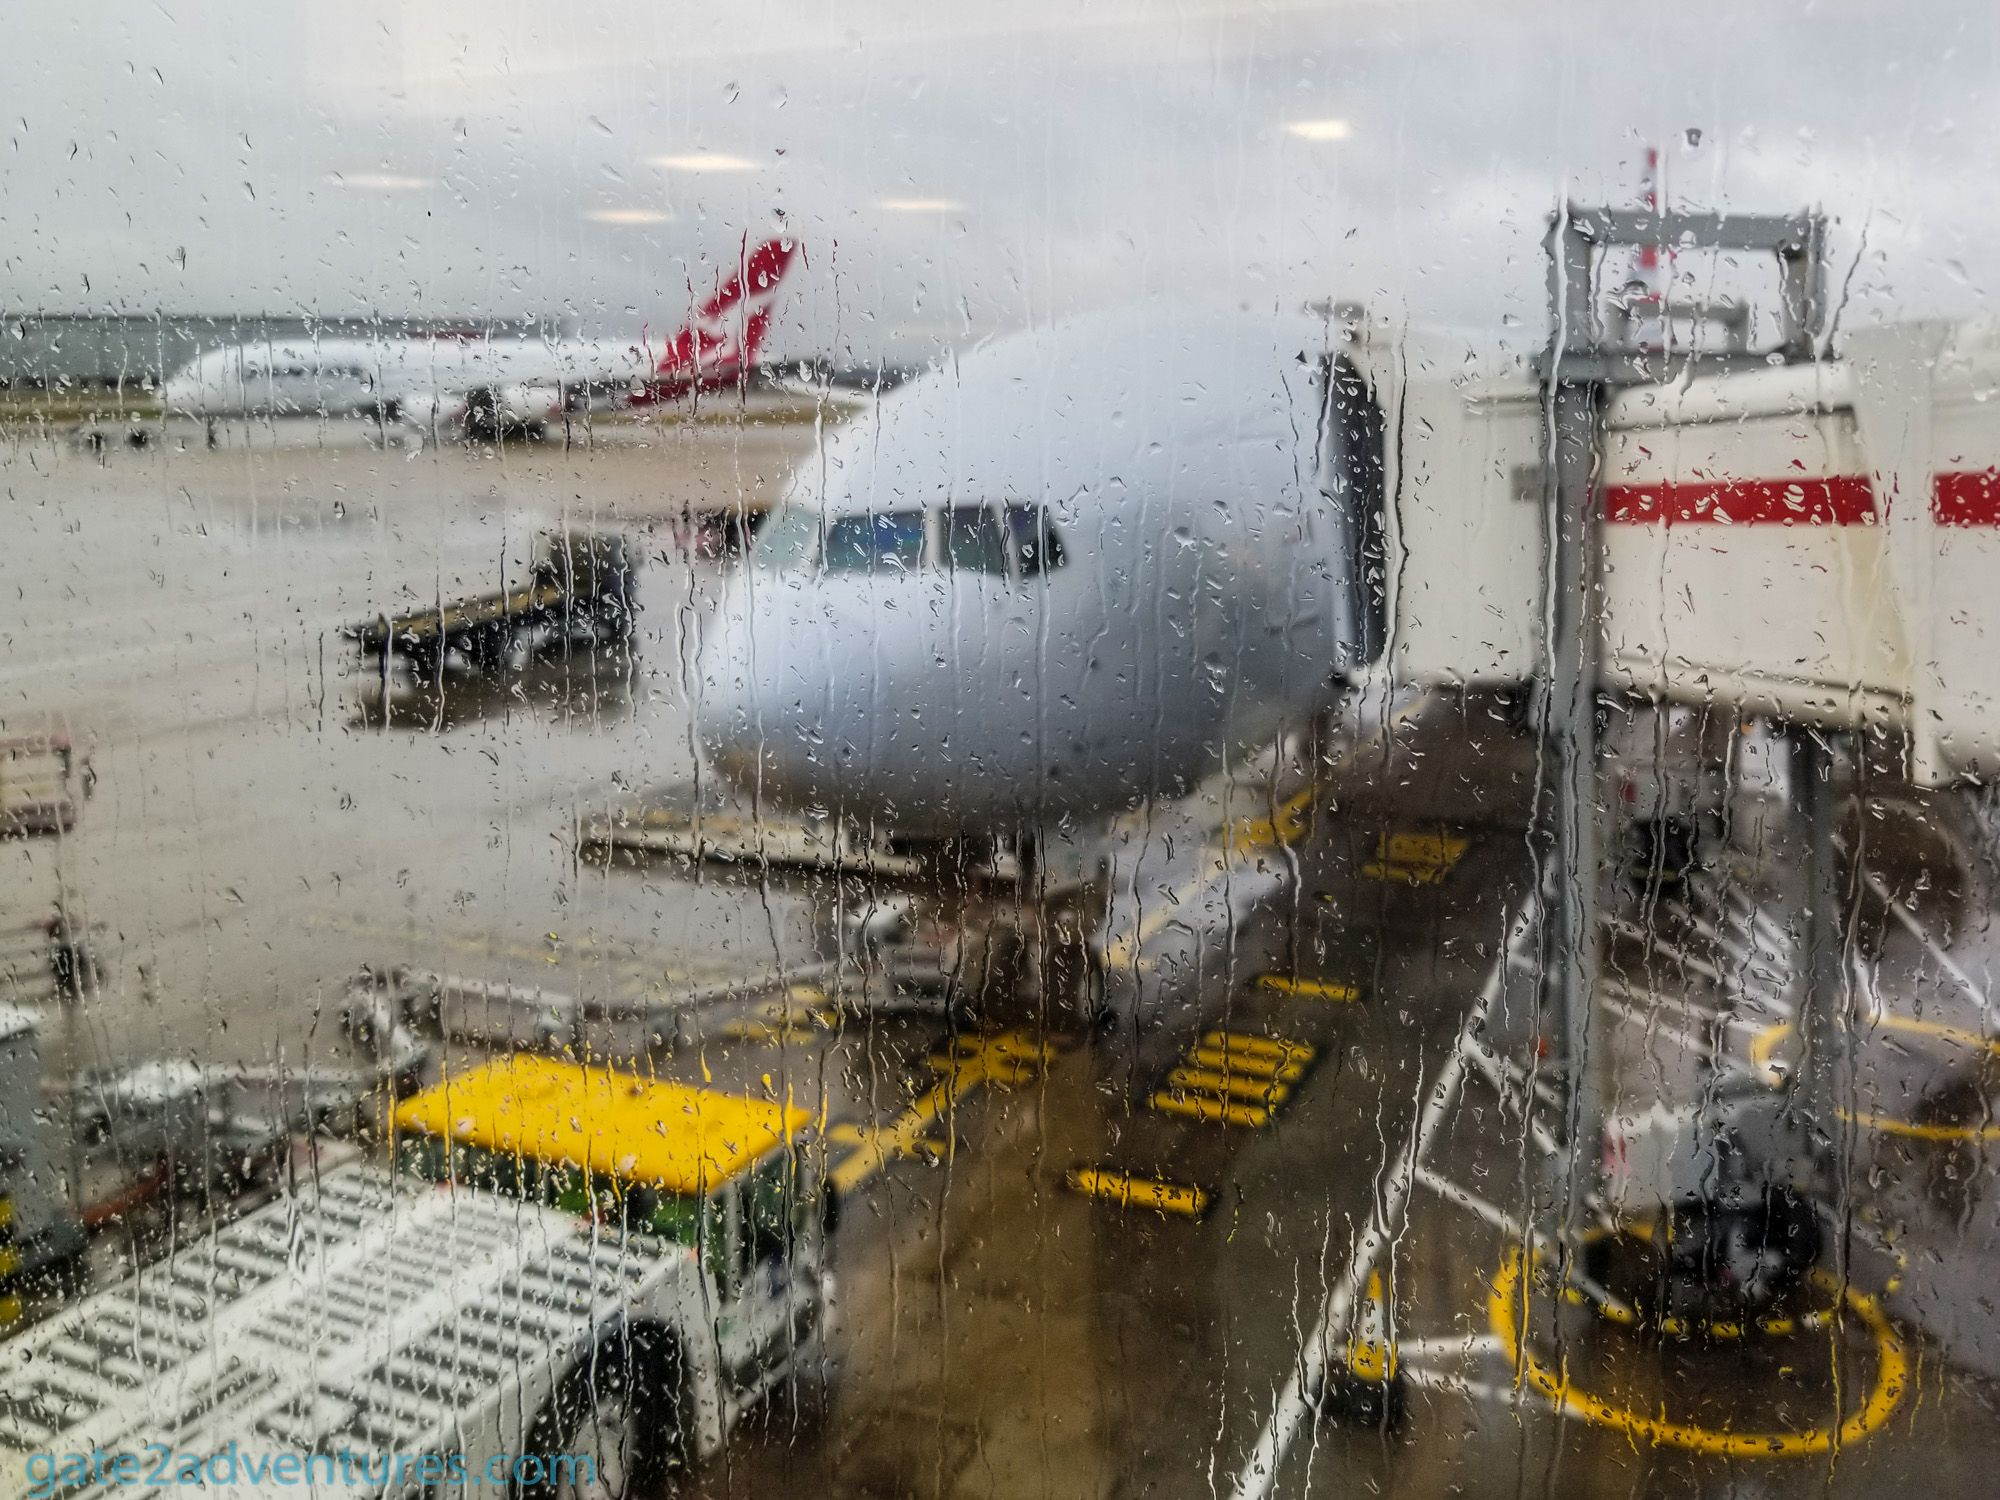 Flight Review: American Airlines Business Class – Boeing 777-300ER London (LHR) to Los Angeles (LAX)